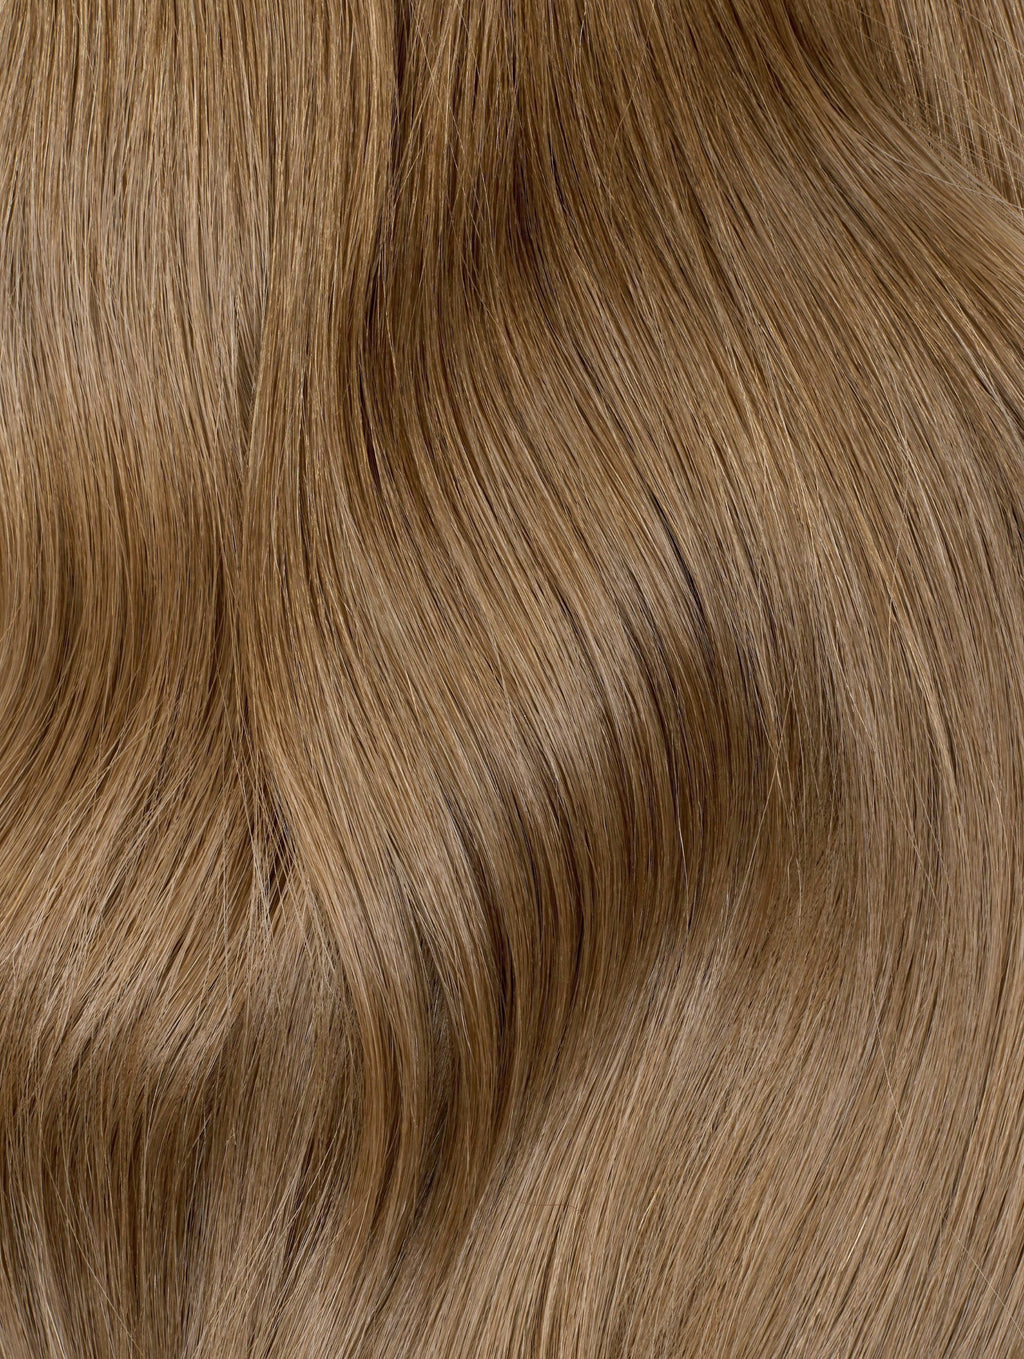 Caramel Brown (#5B) Tape (50g) - BOMBAY HAIR  - Brown Tape Hair